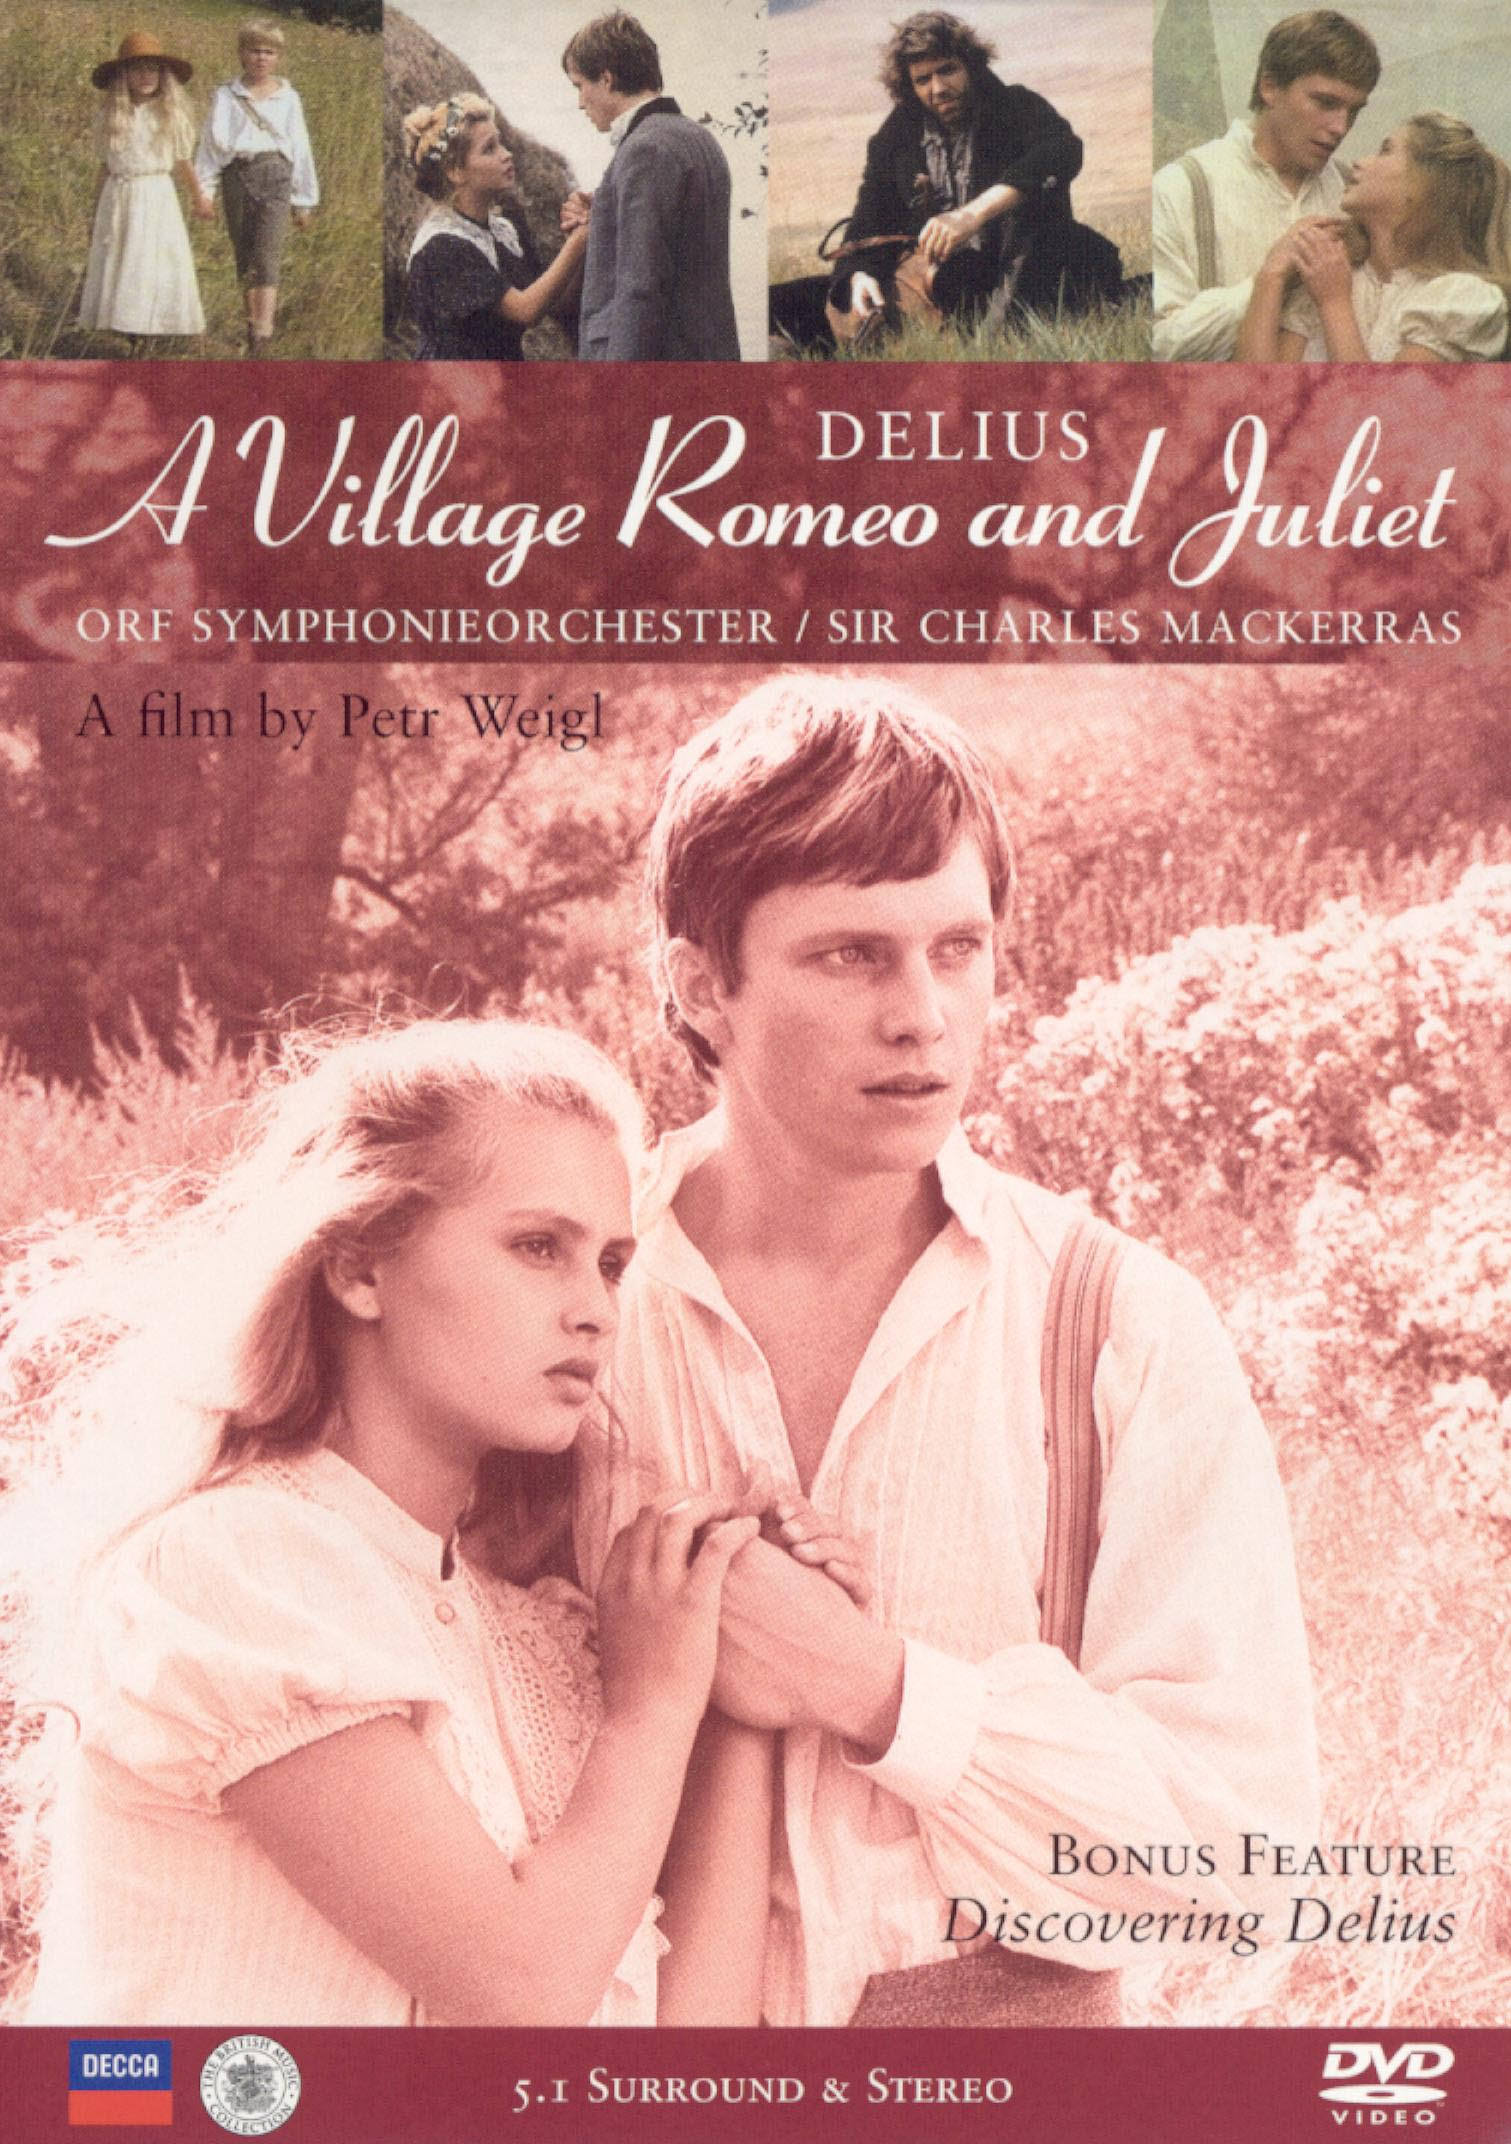 Delius: A Village Romeo and Juliet